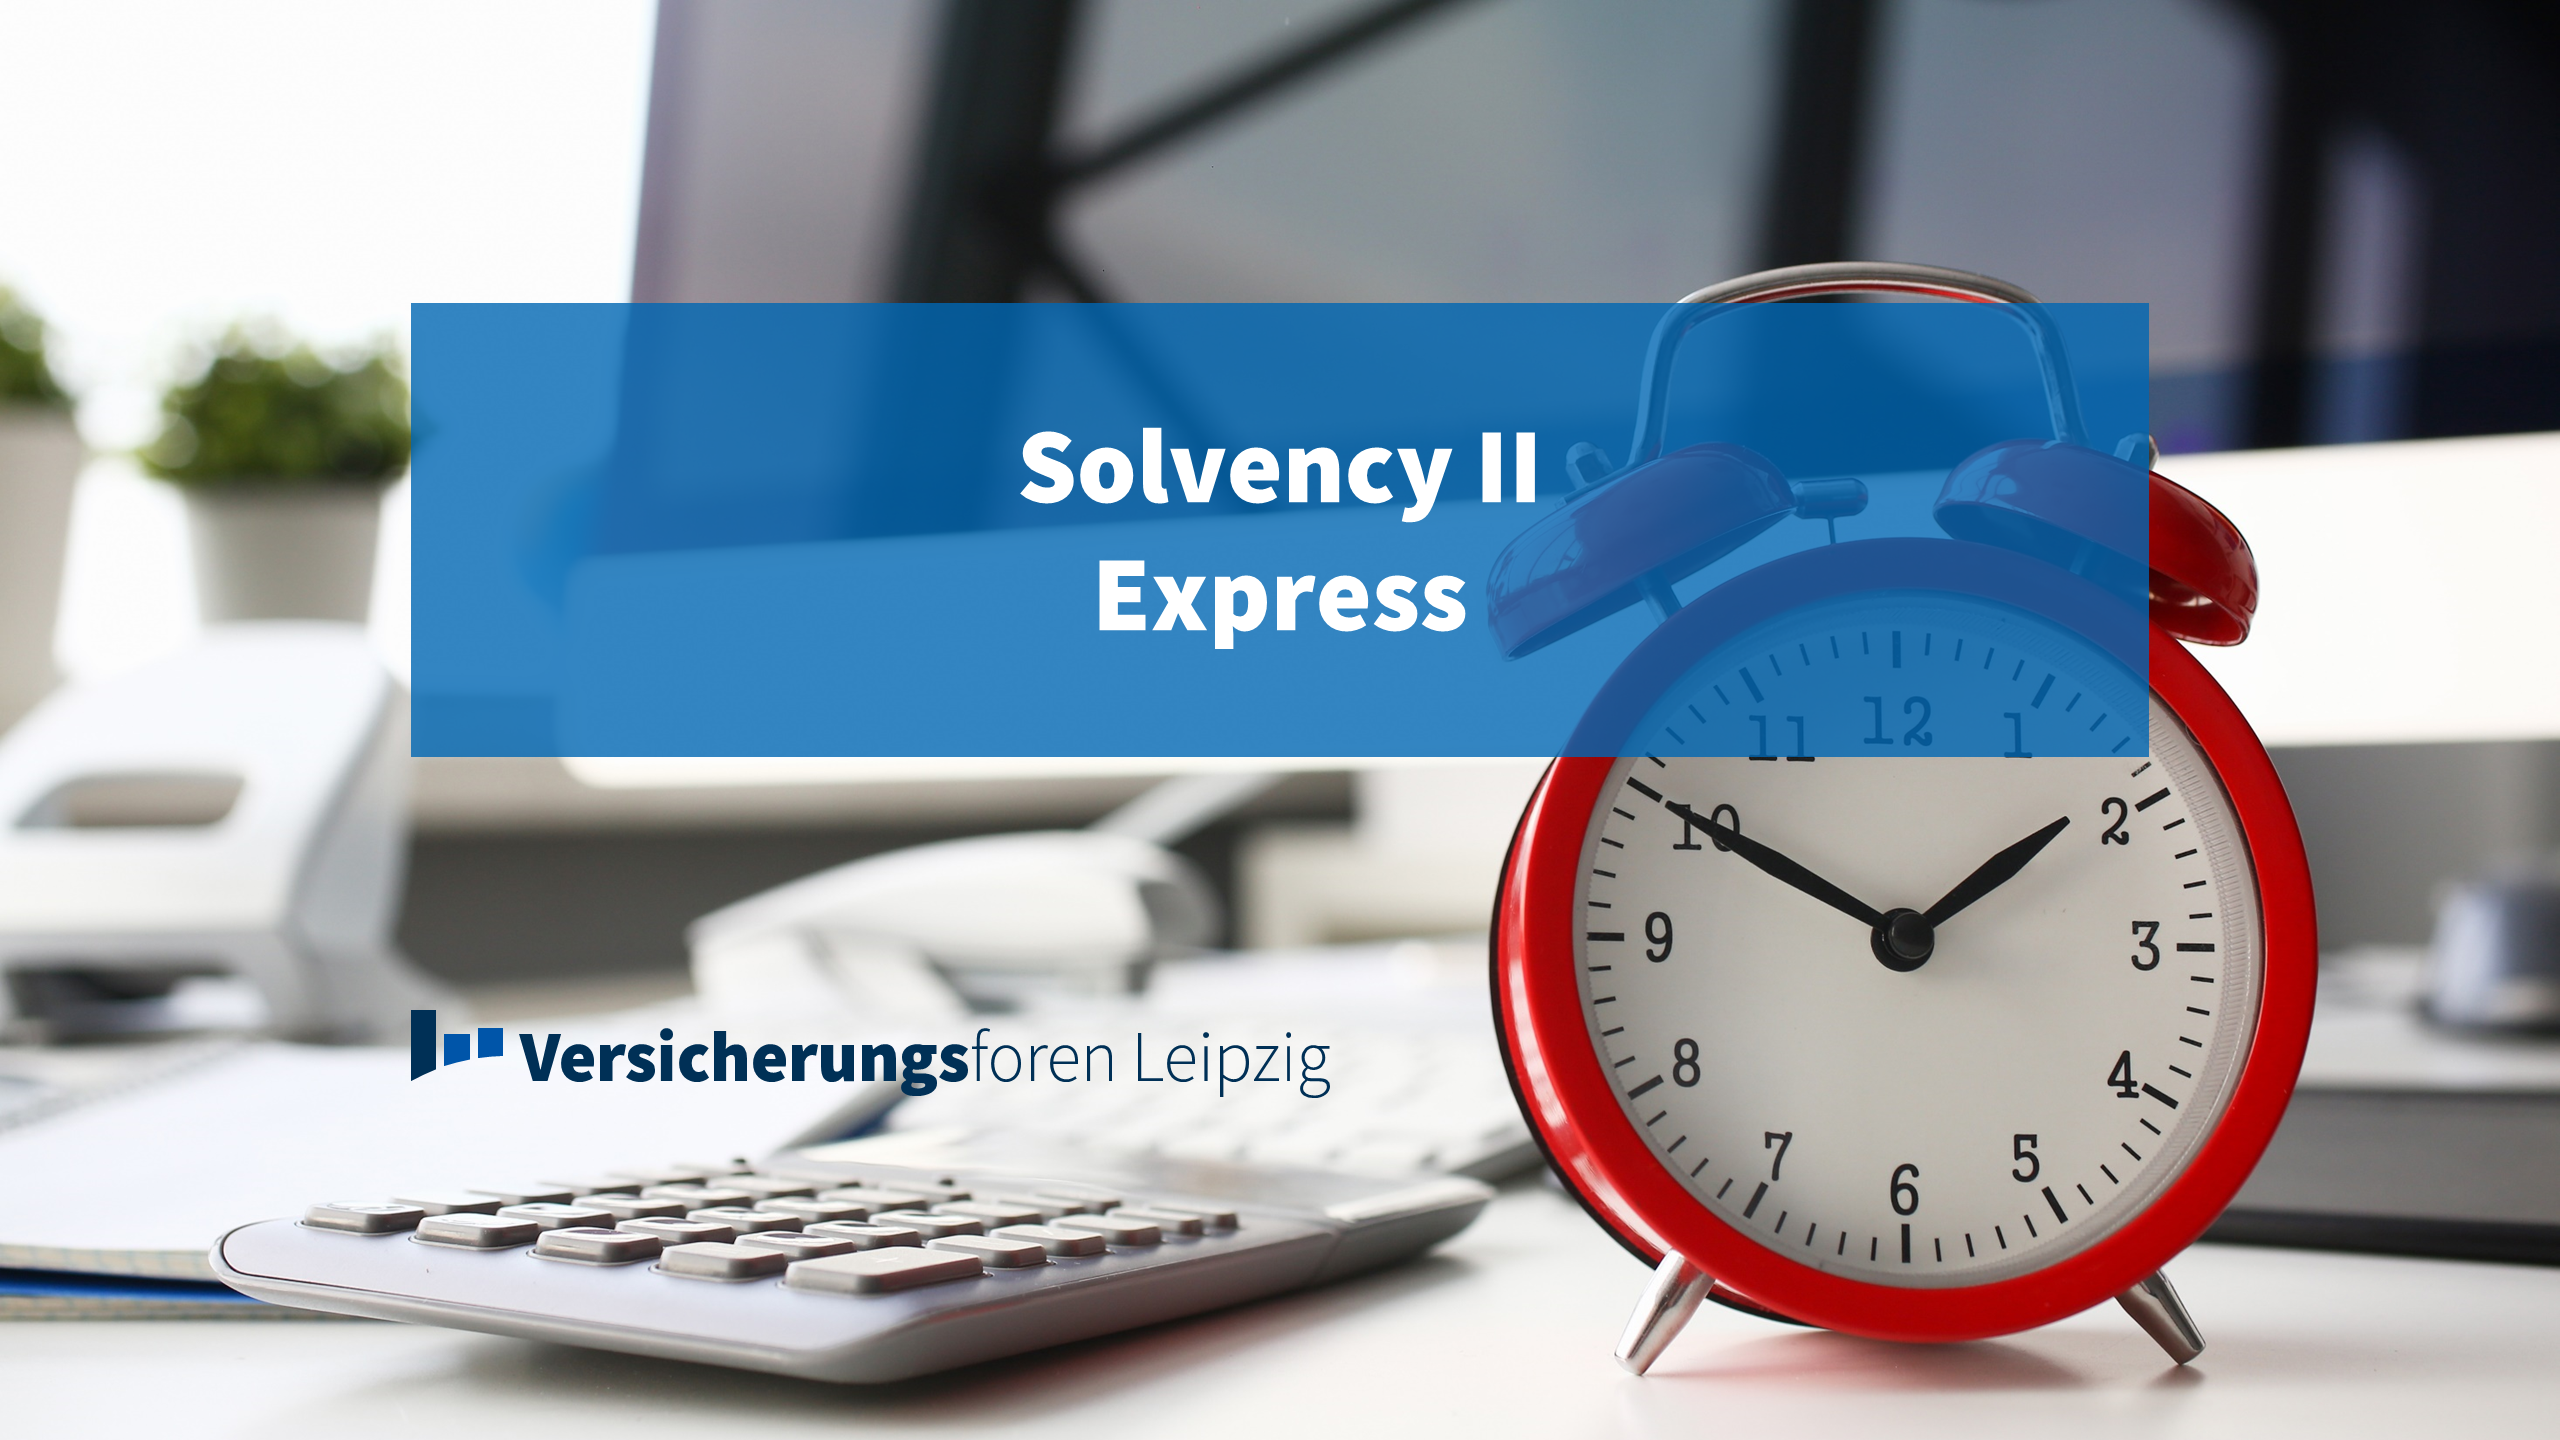 Solvency II Express